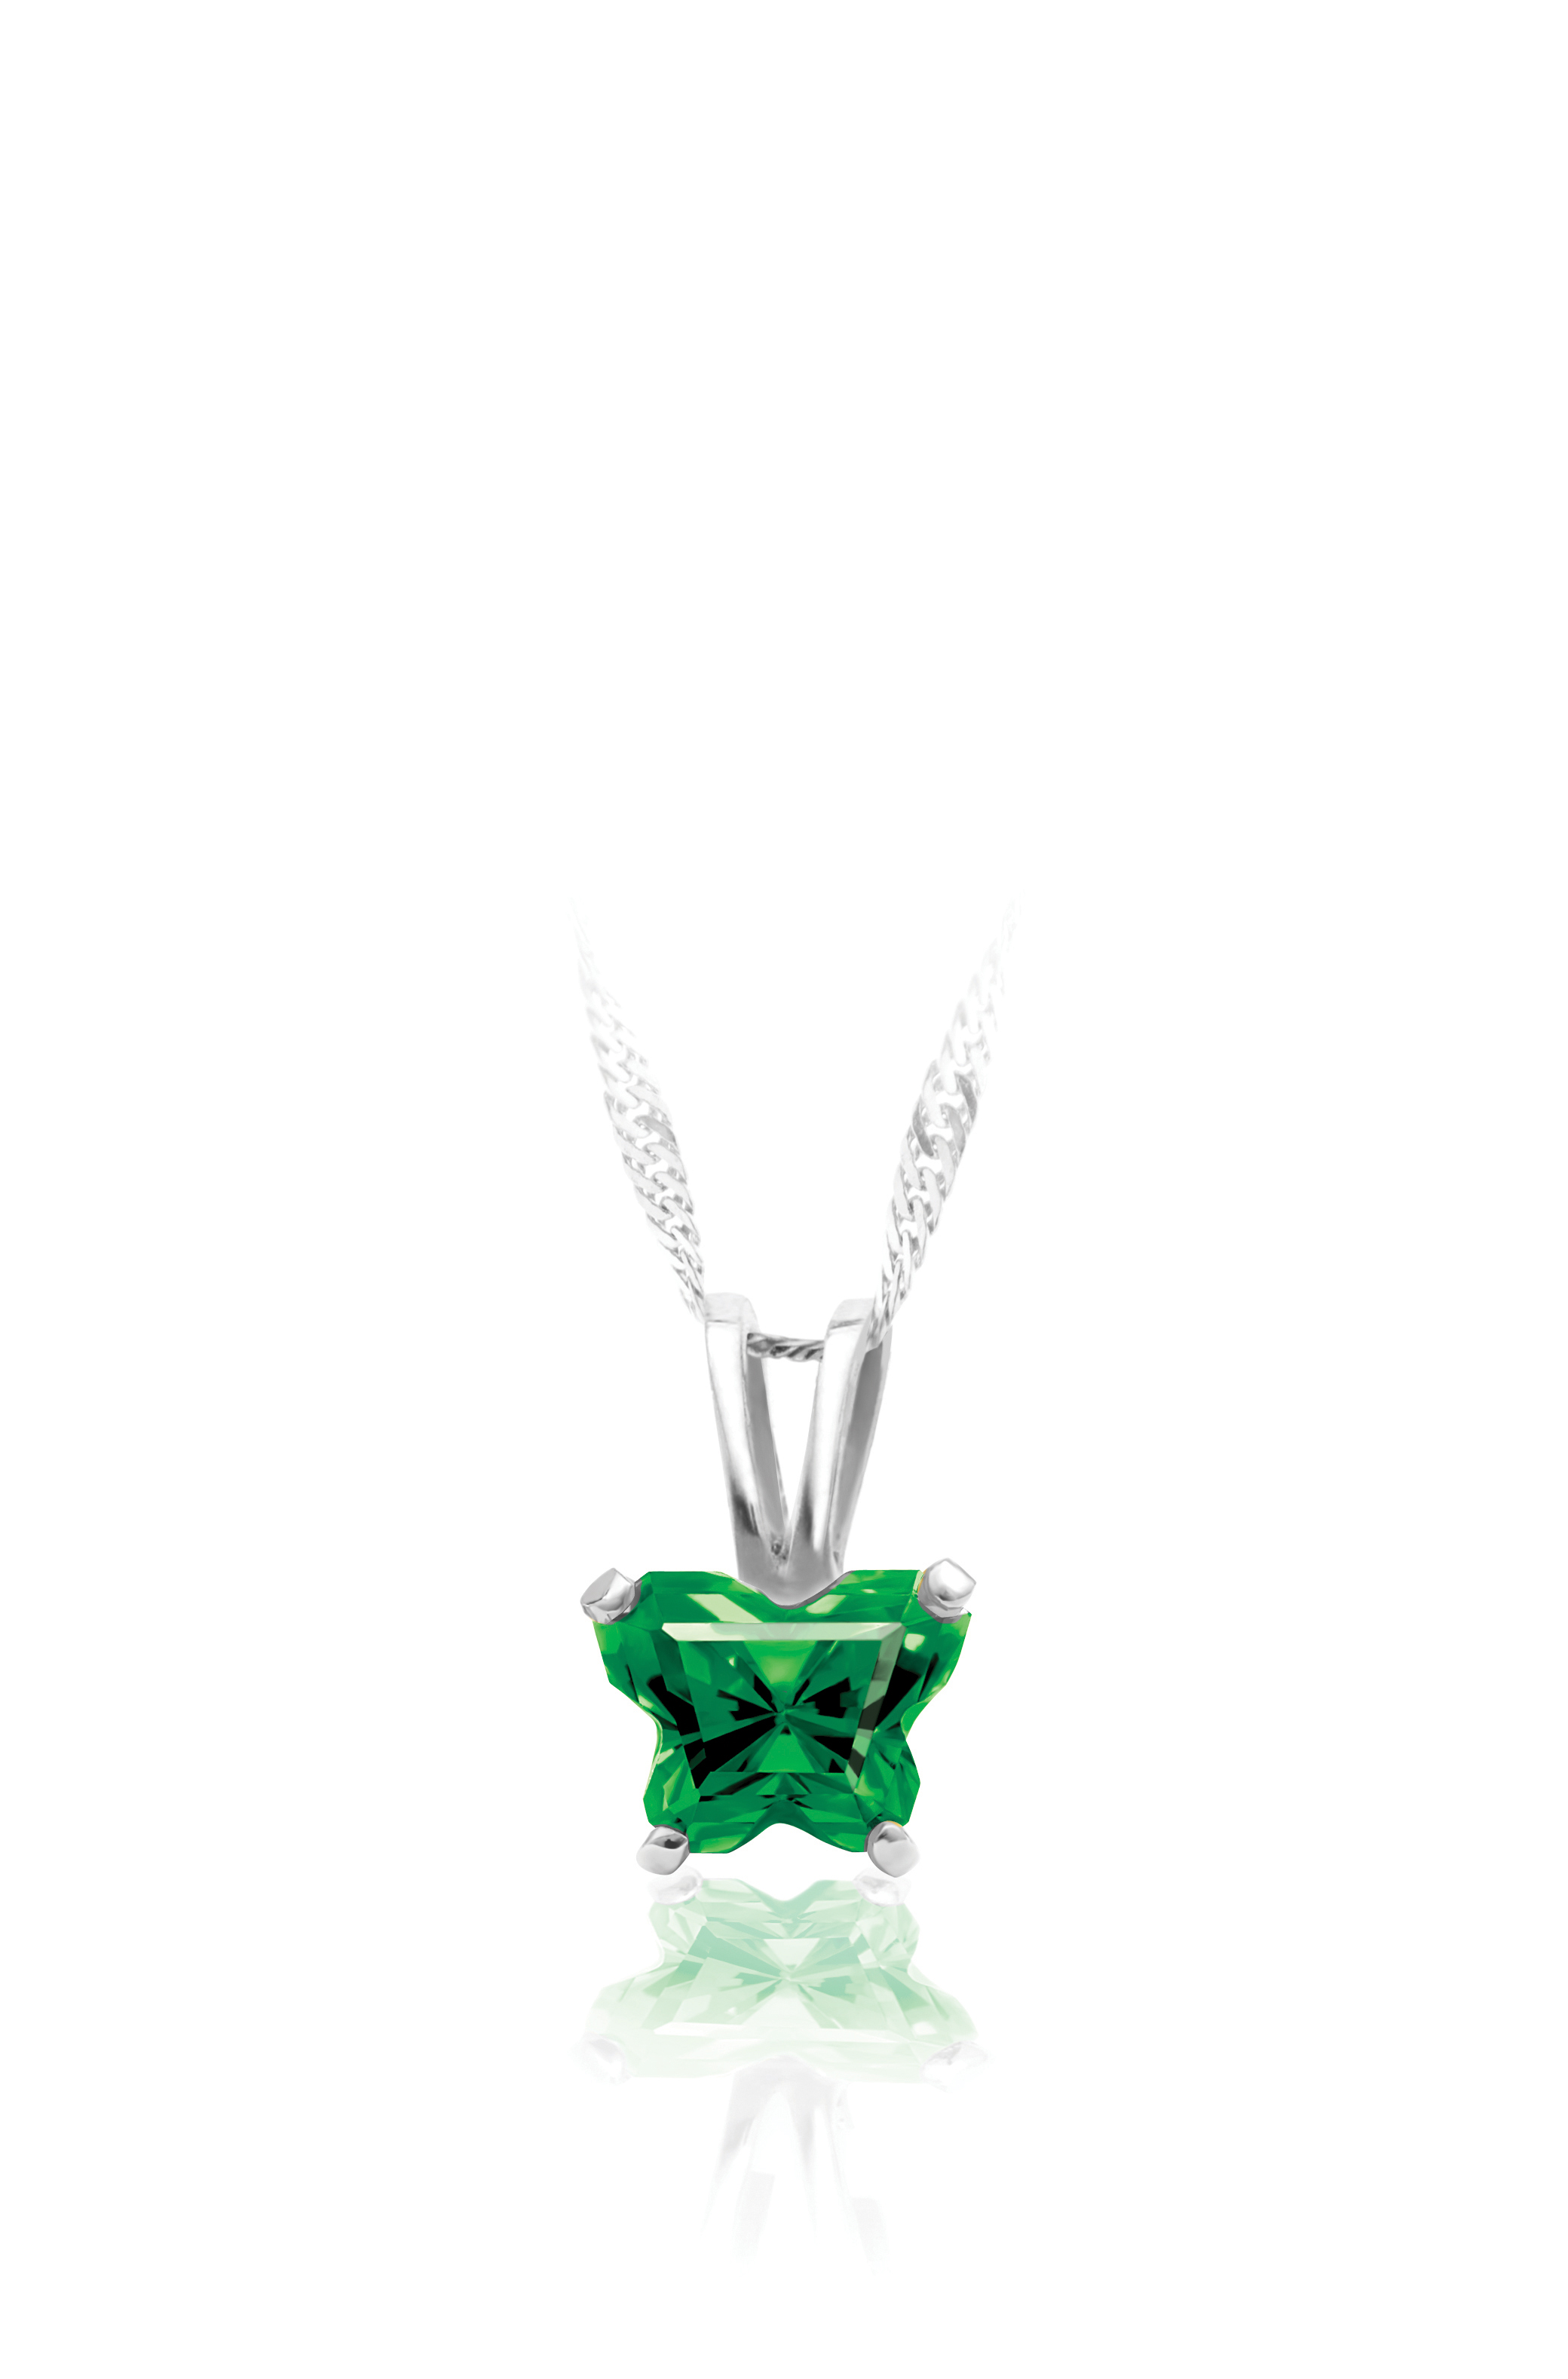 pendant for babies in sterling silver with green cubic zirconia (month of May) - Chain included